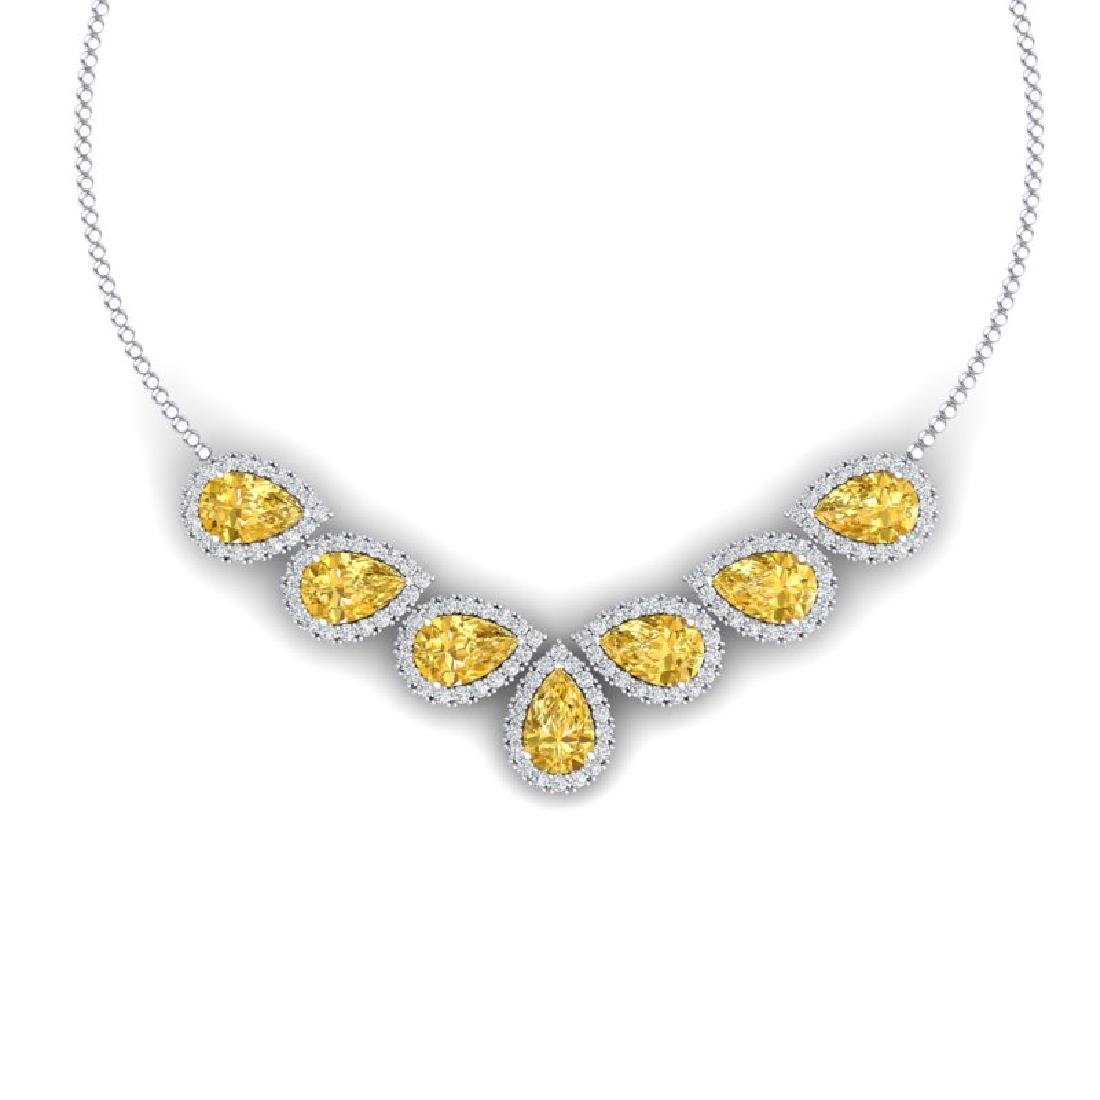 33.34 CTW Royalty Canary Citrine & VS Diamond Necklace